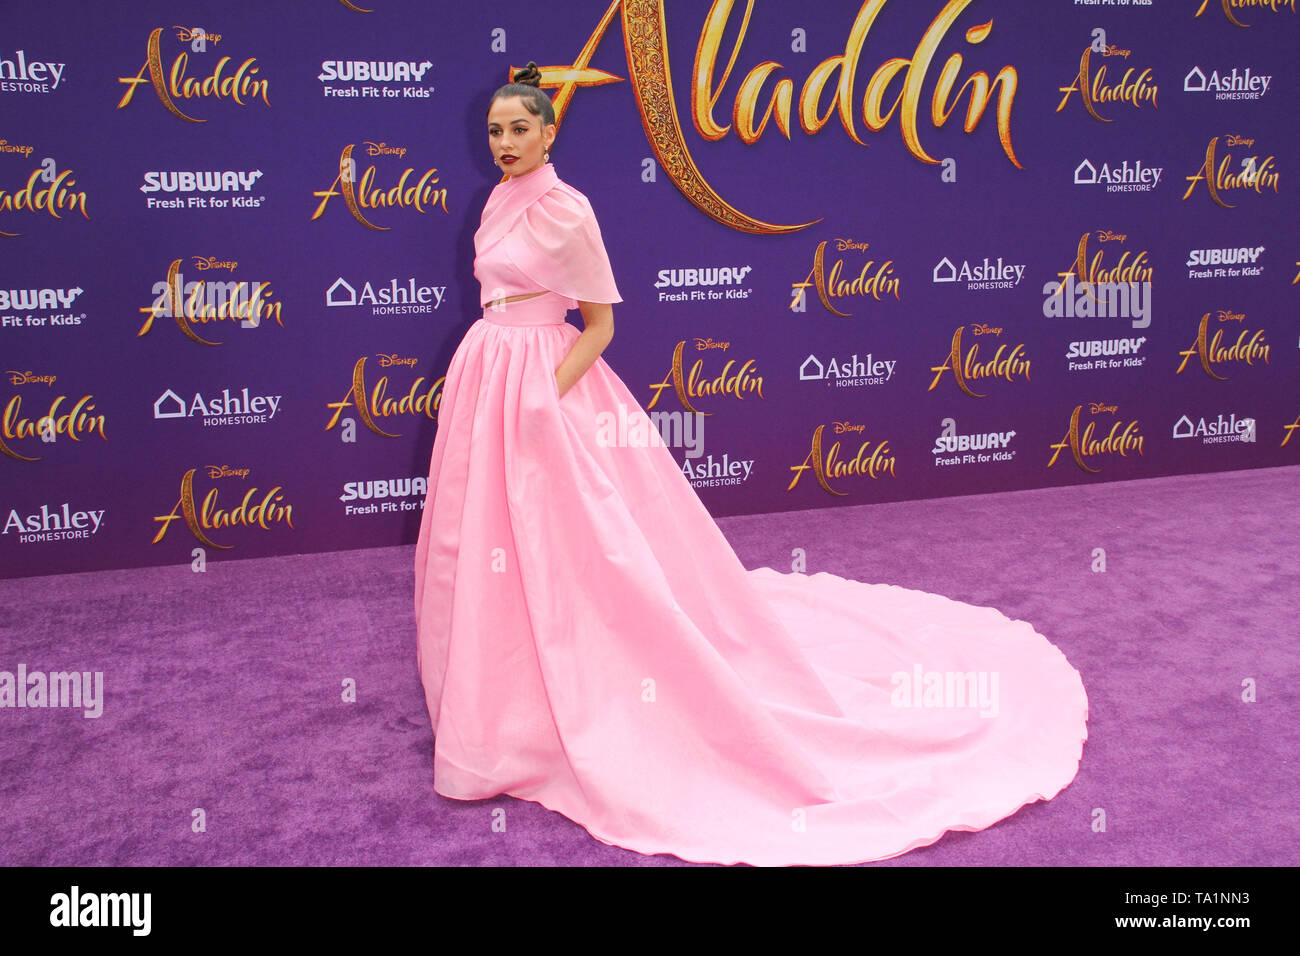 Los Angeles, USA. 21st May, 2019. Naomi Scott at The World Premiere of Disney's 'Aladdin' held at El Capitan Theatre, Hollywood, CA, May 21, 2019. Photo Credit: Joseph Martinez/PictureLux Credit: PictureLux / The Hollywood Archive/Alamy Live News - Stock Image